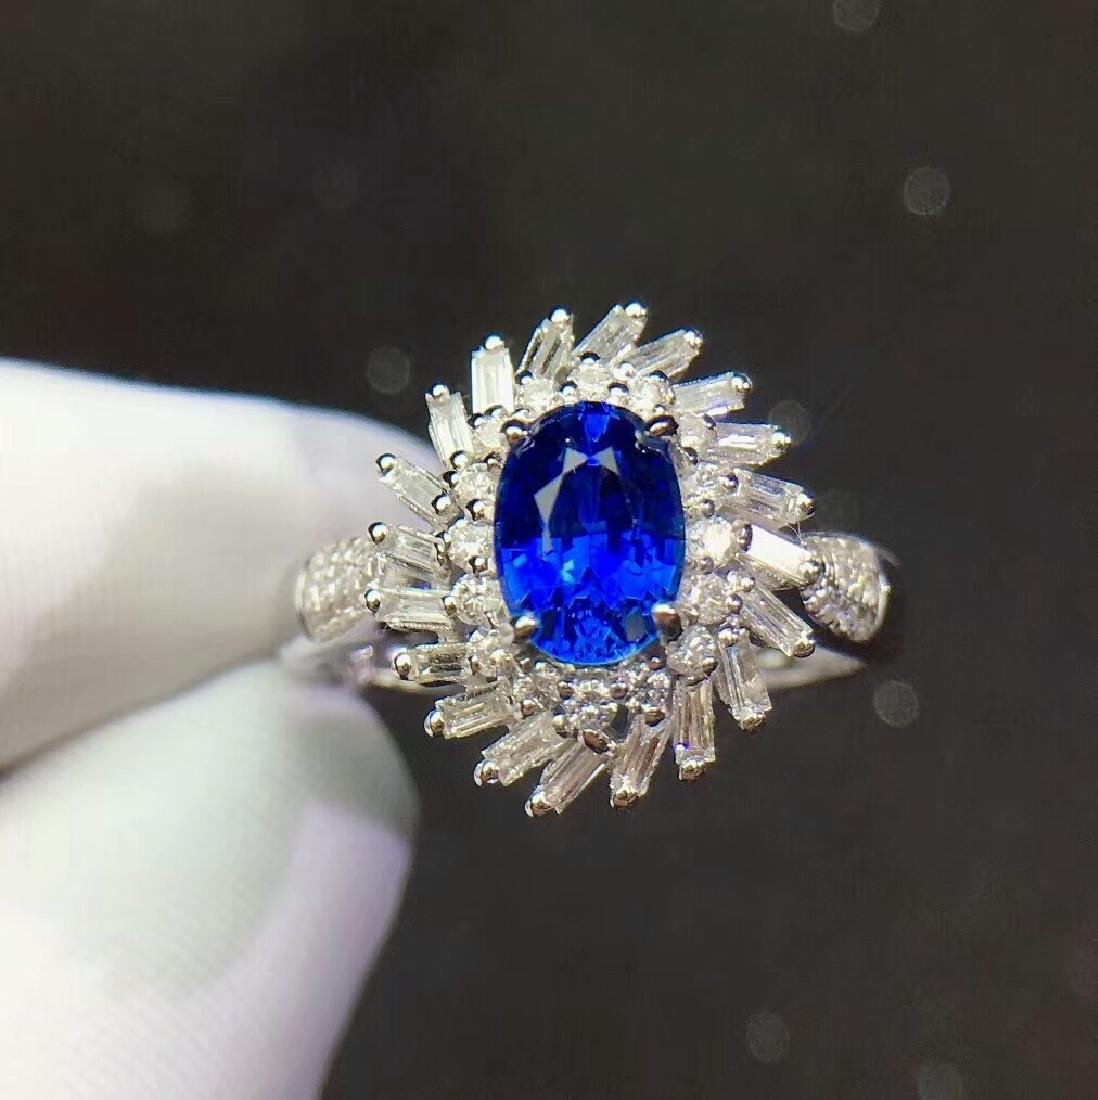 1.3ct Sapphire Ring in 18kt White Gold